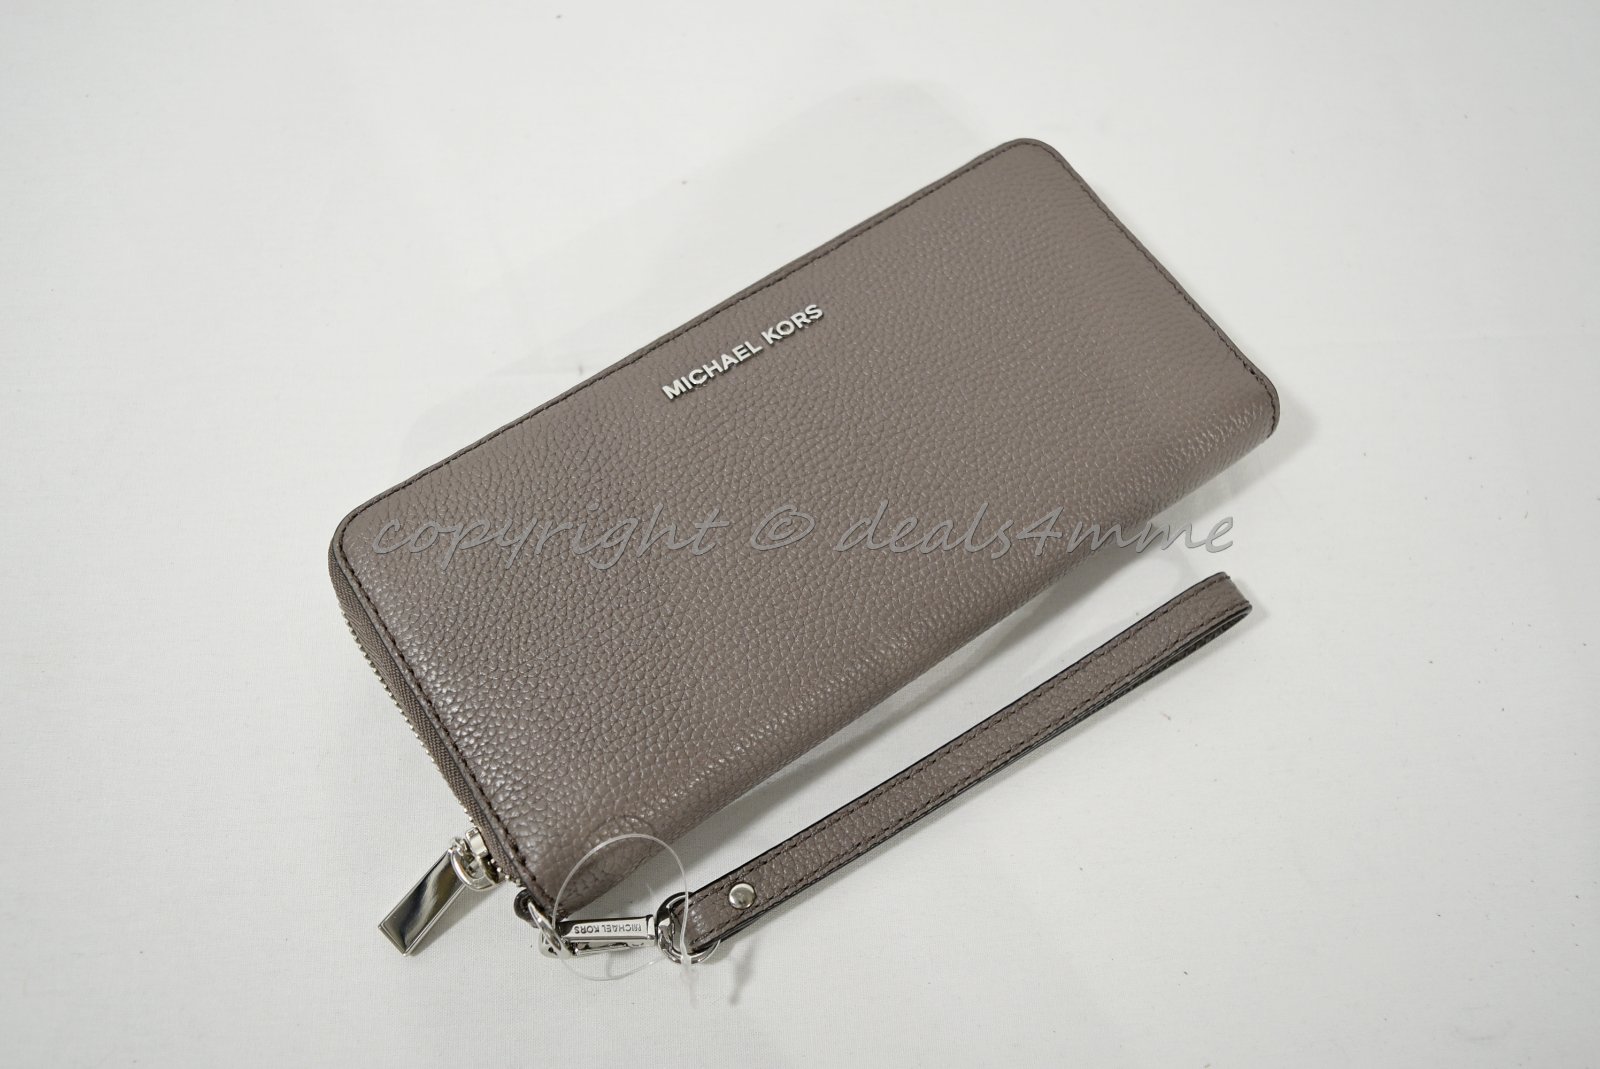 3411fc7e4d4c S l1600. S l1600. Previous. Michael Kors Mercer Travel Continental Wallet  in Cinder - Grey Pebble Leather